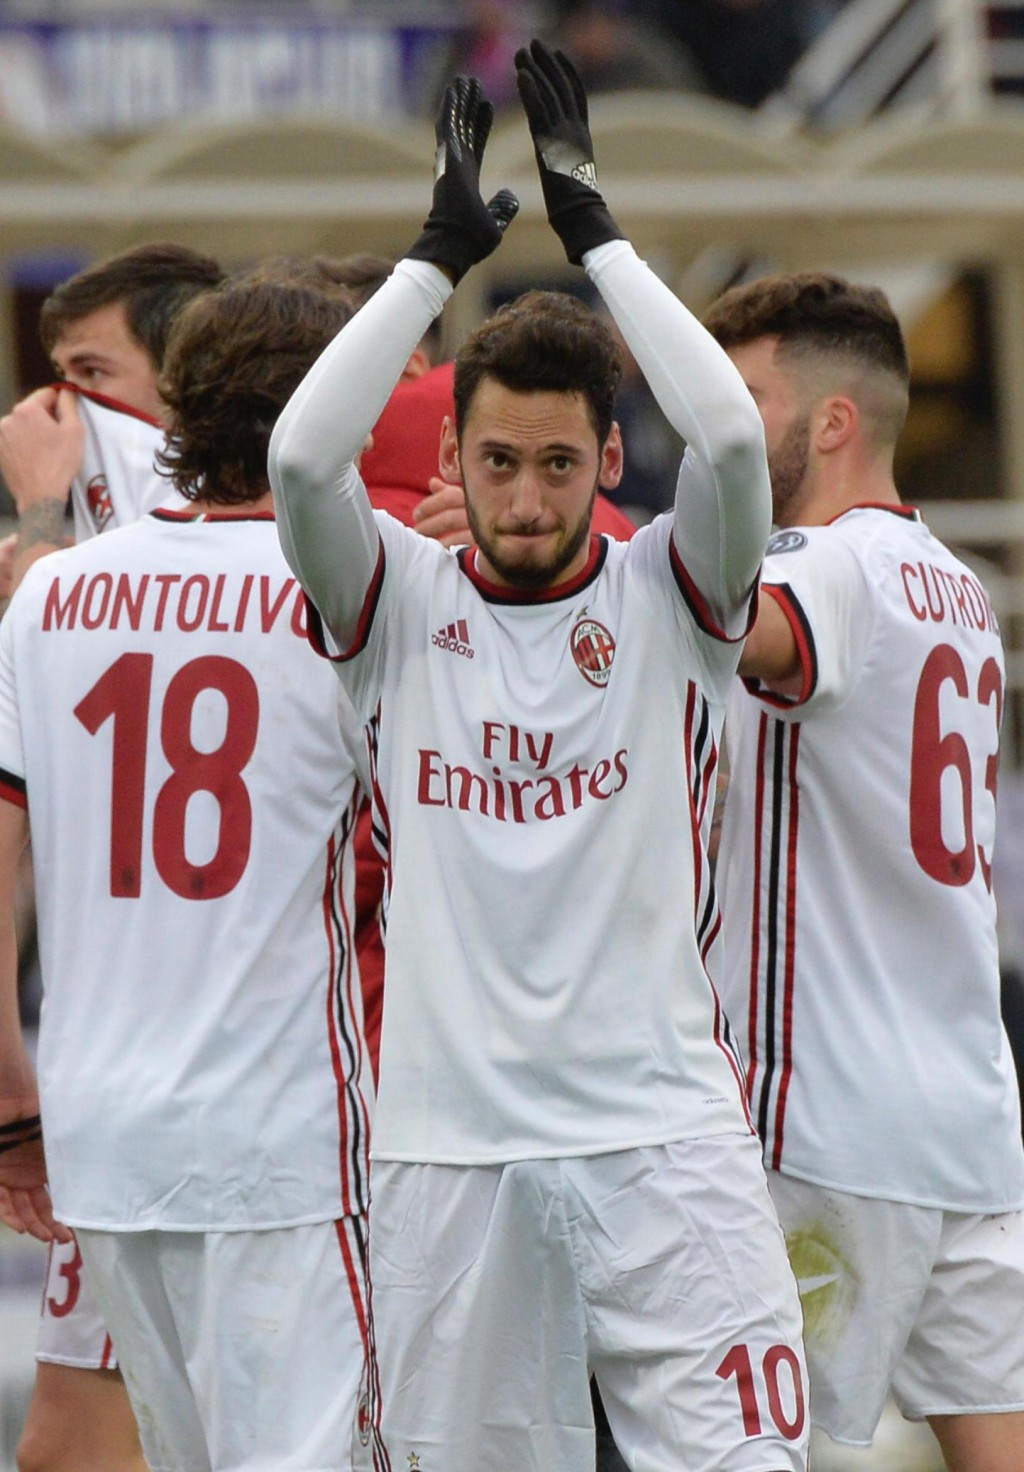 Milan's Hakan Calhanoglu celebrates after scoring the final equalizer during the Italian Serie A soccer match between Fiorentina and AC Milan at the A...